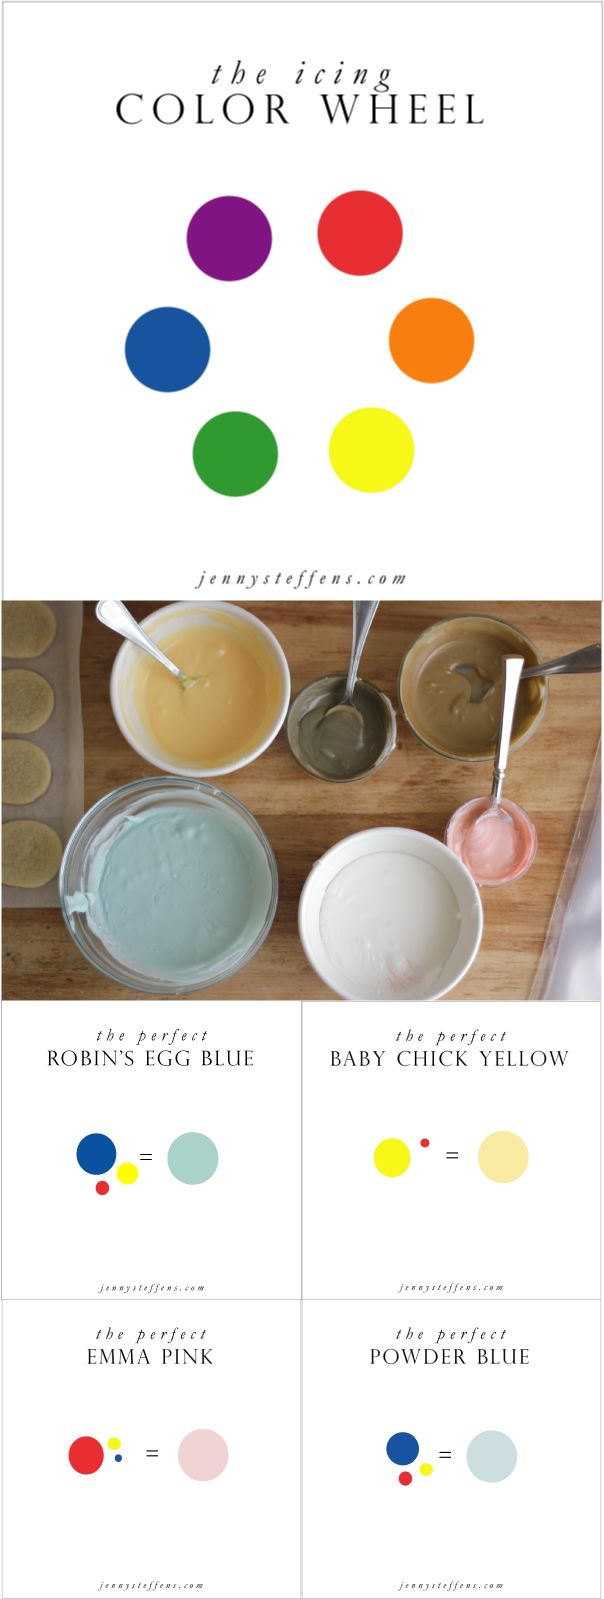 Jenny Steffens Hobick: Tips for Perfect Icing Colors | The Icing Color Wheel